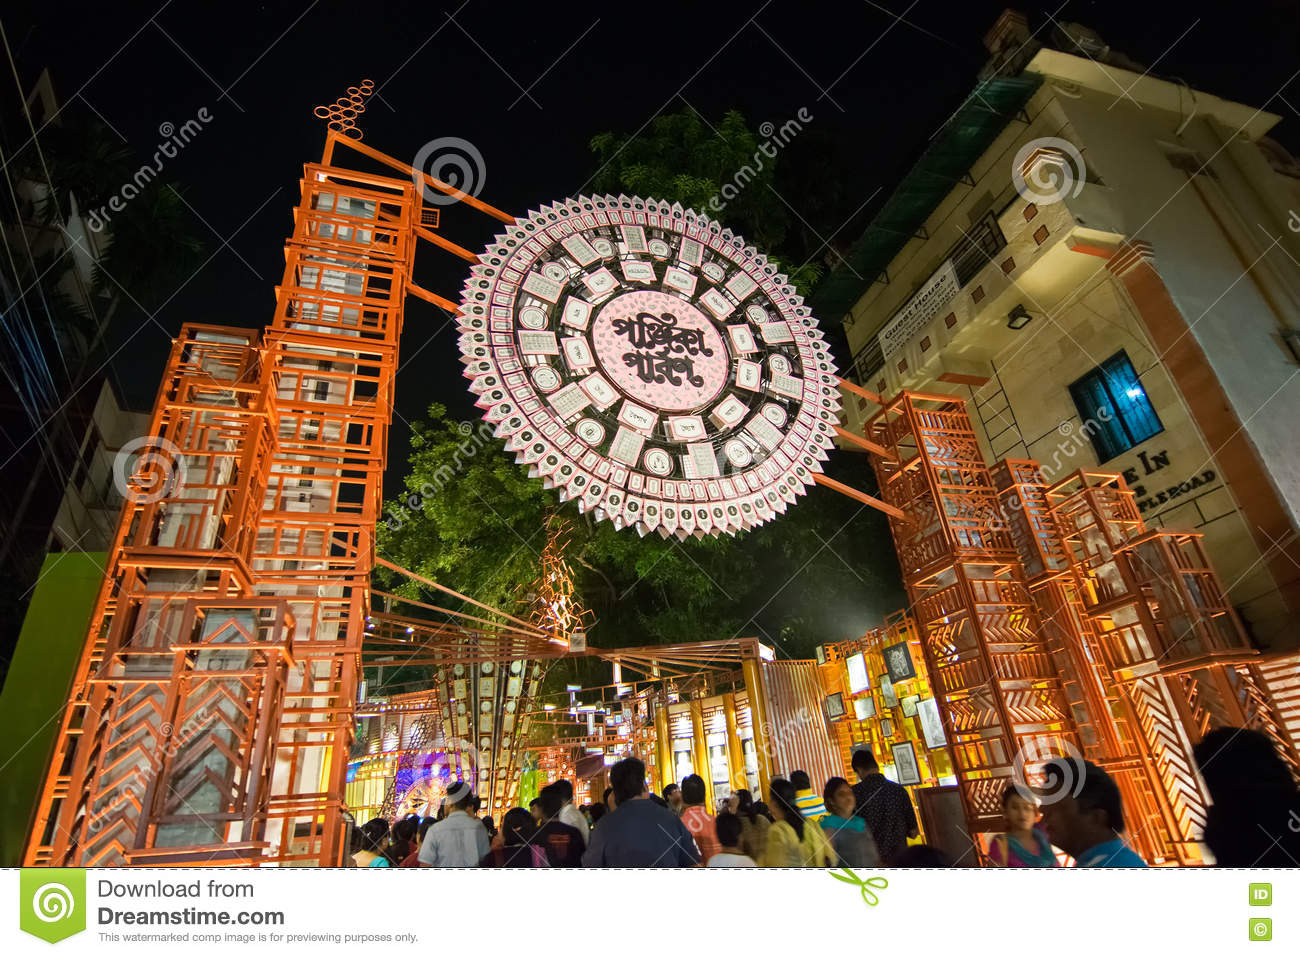 Night image of durga puja pandal kolkata west bengal india night image of durga puja pandal kolkata west bengal india thecheapjerseys Images